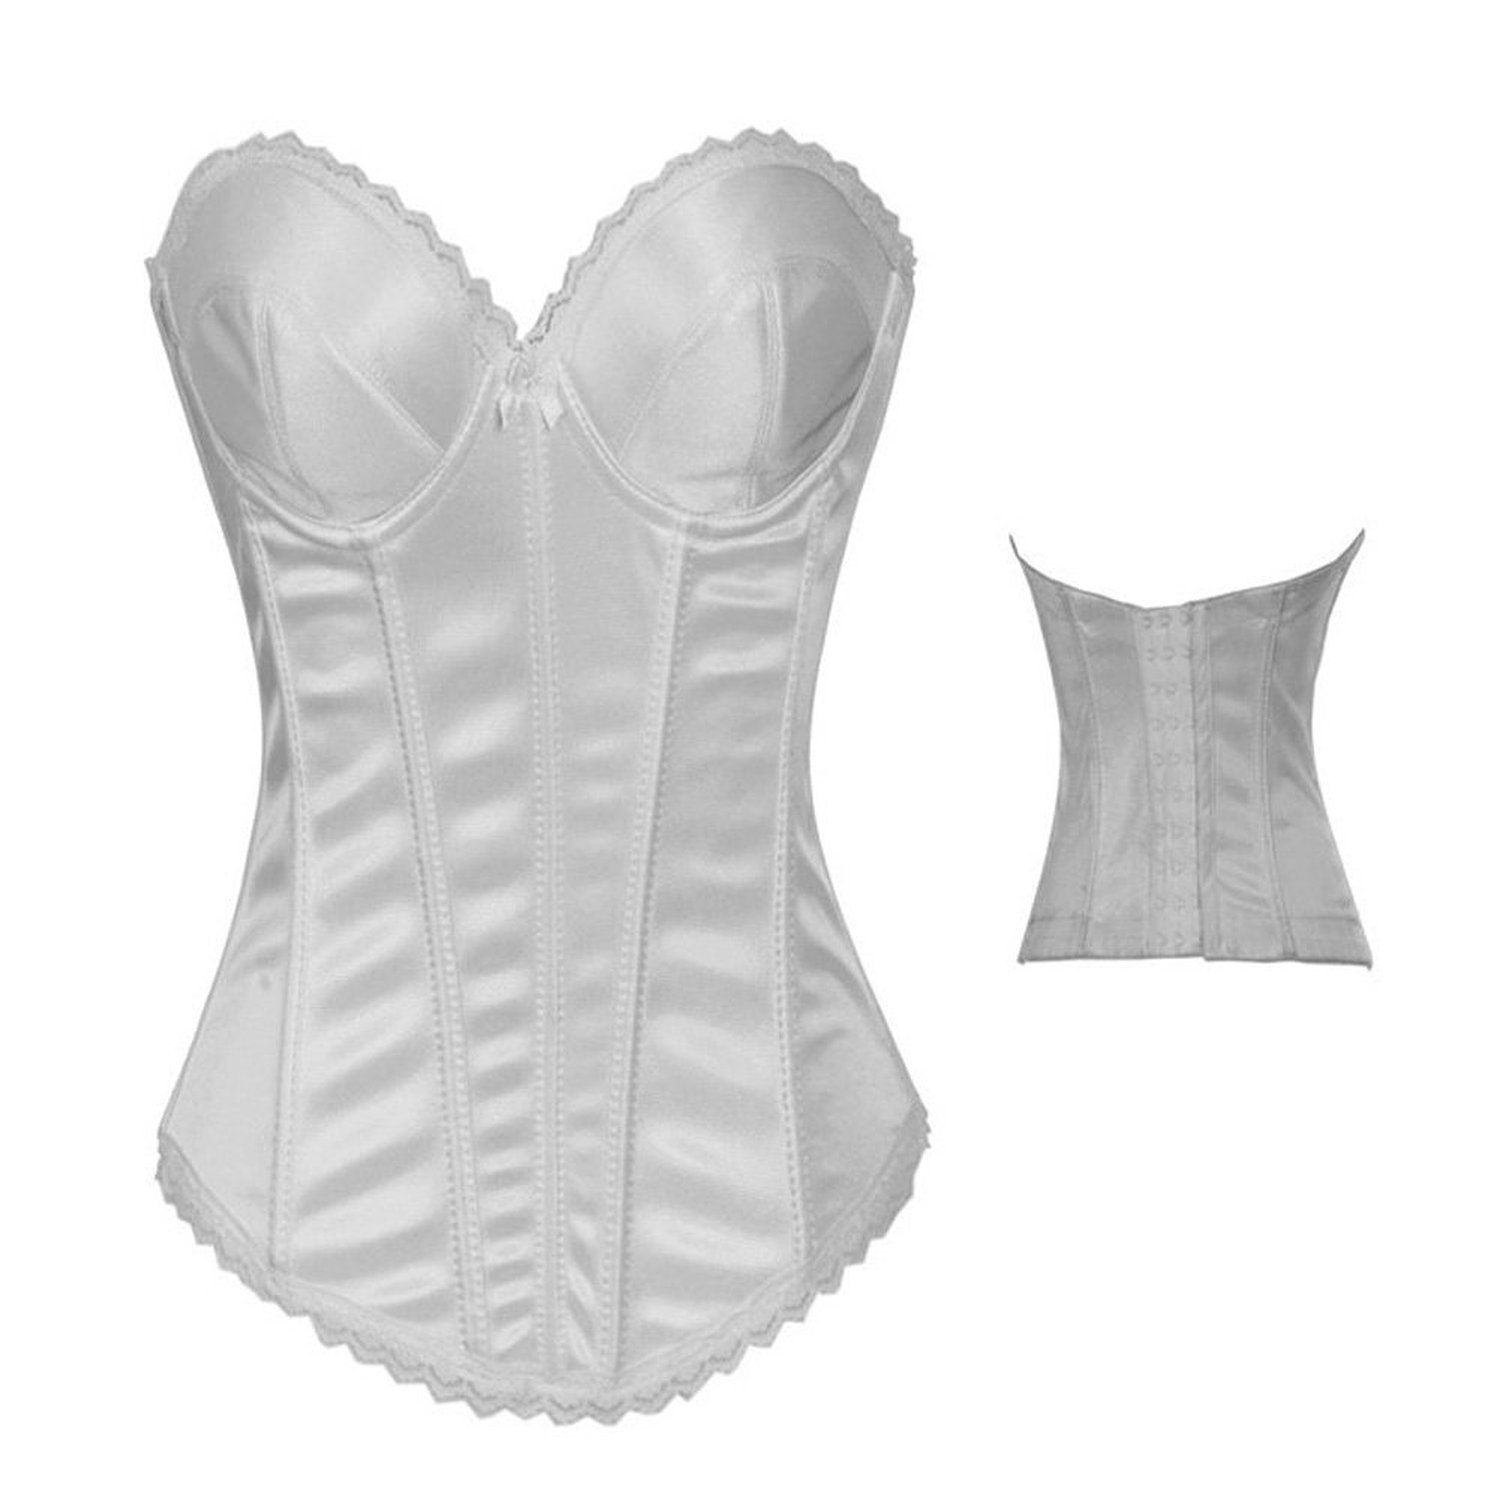 08ed7f2b017 BINCHENG Womens Lace Bridal Corset with G-string     Awesome product. Click  the image   Plus size lingerie